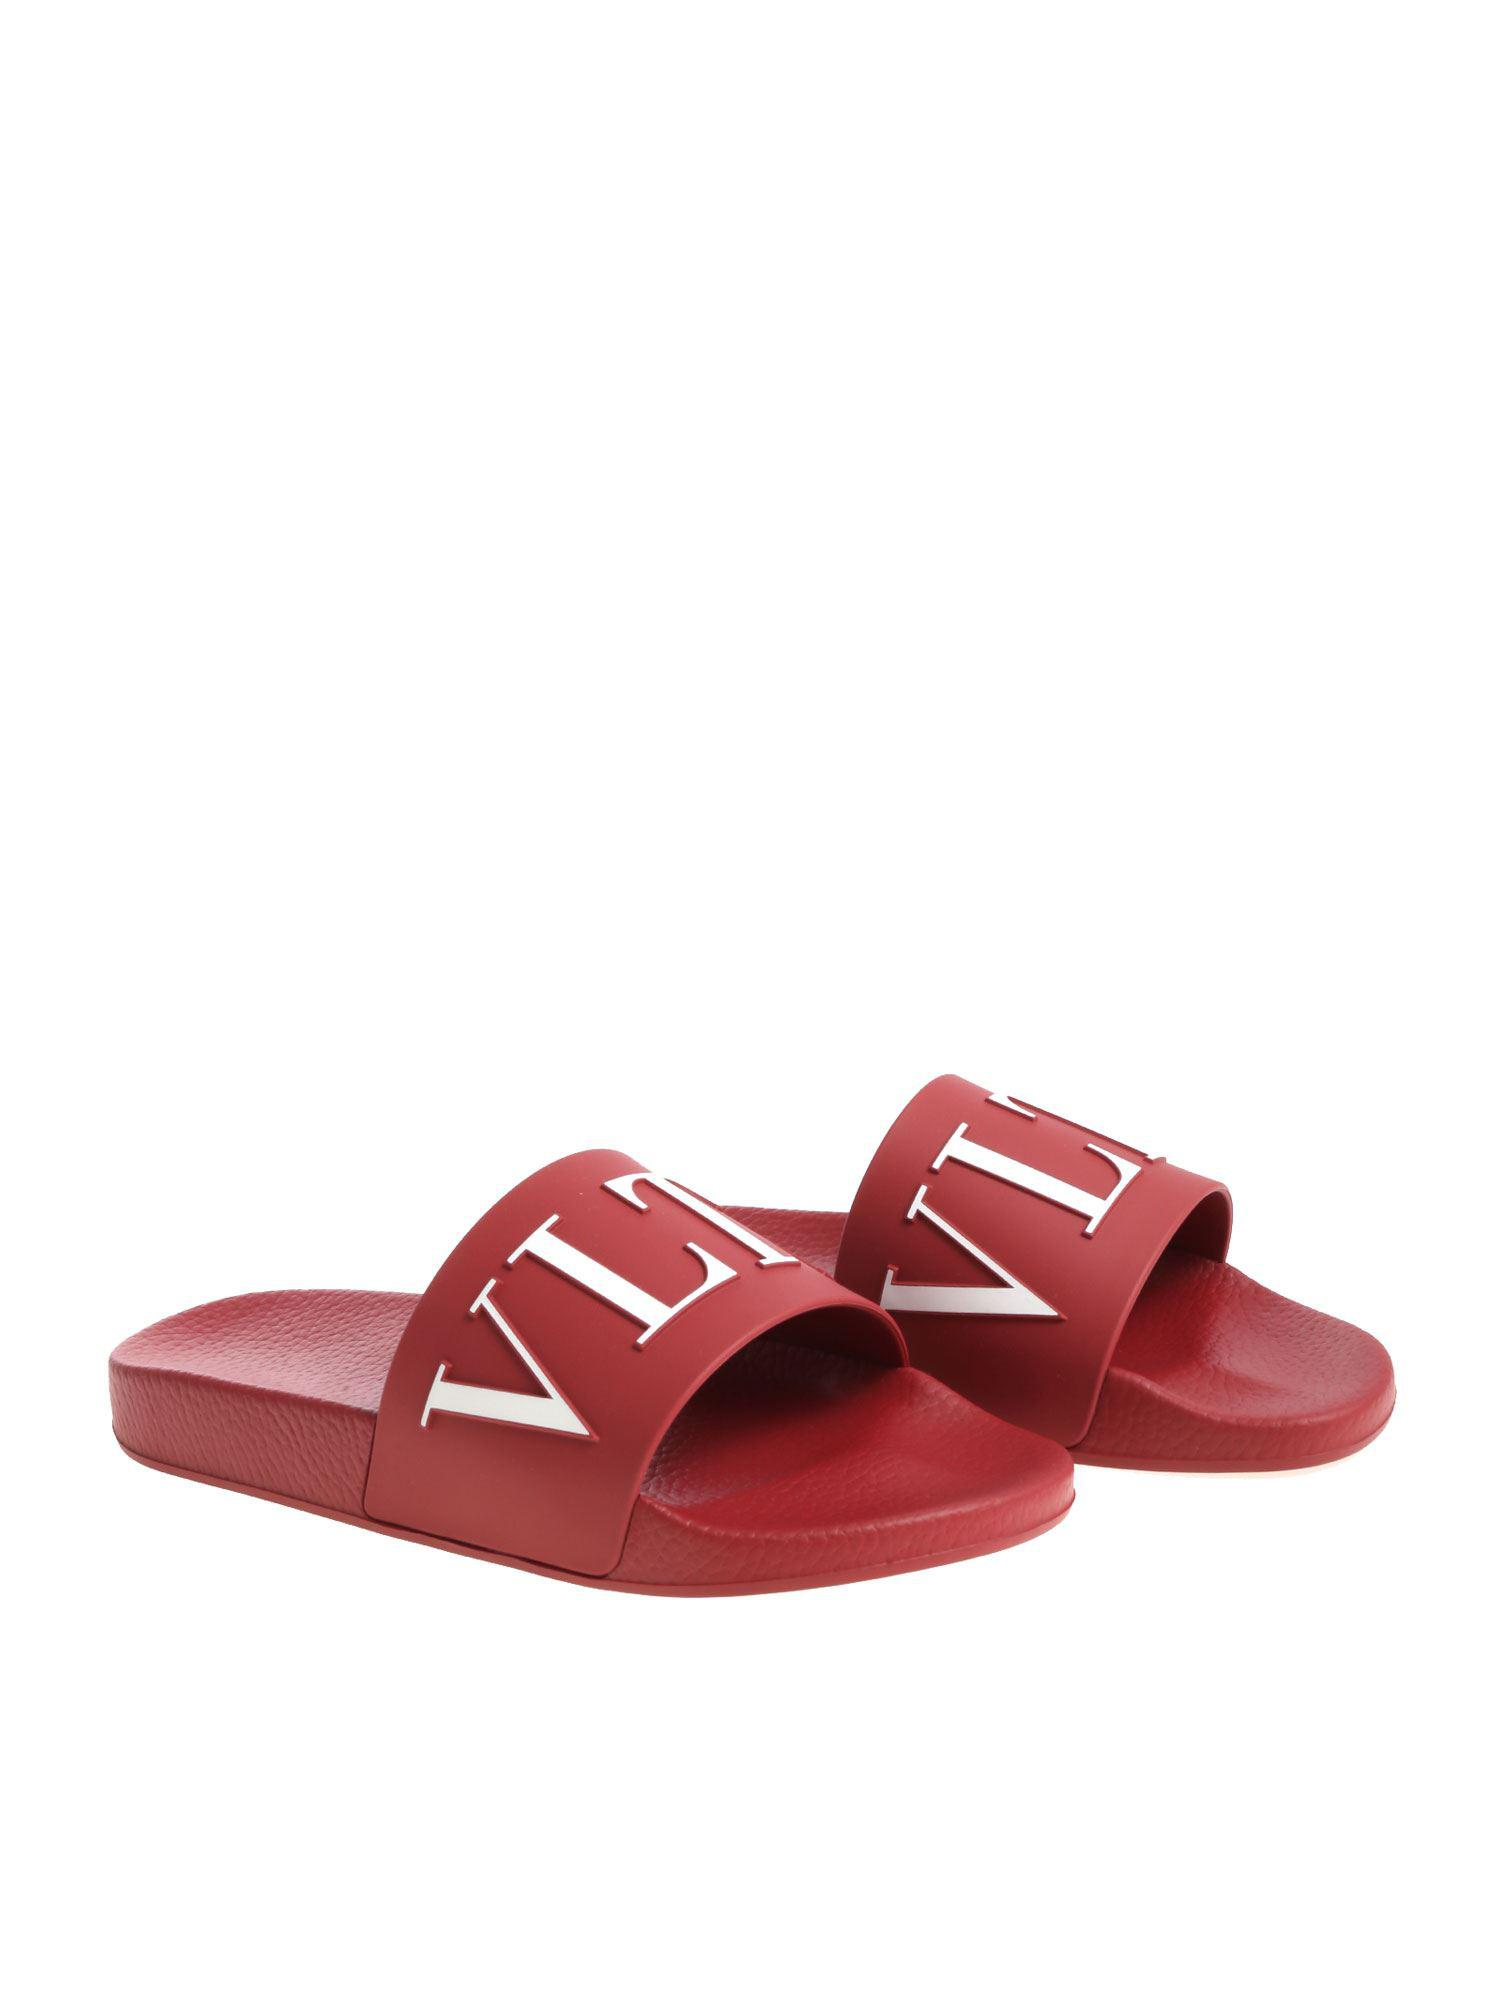 e3d568d9209 Valentino Garavani Vltn Slides in Red for Men - Save 59% - Lyst